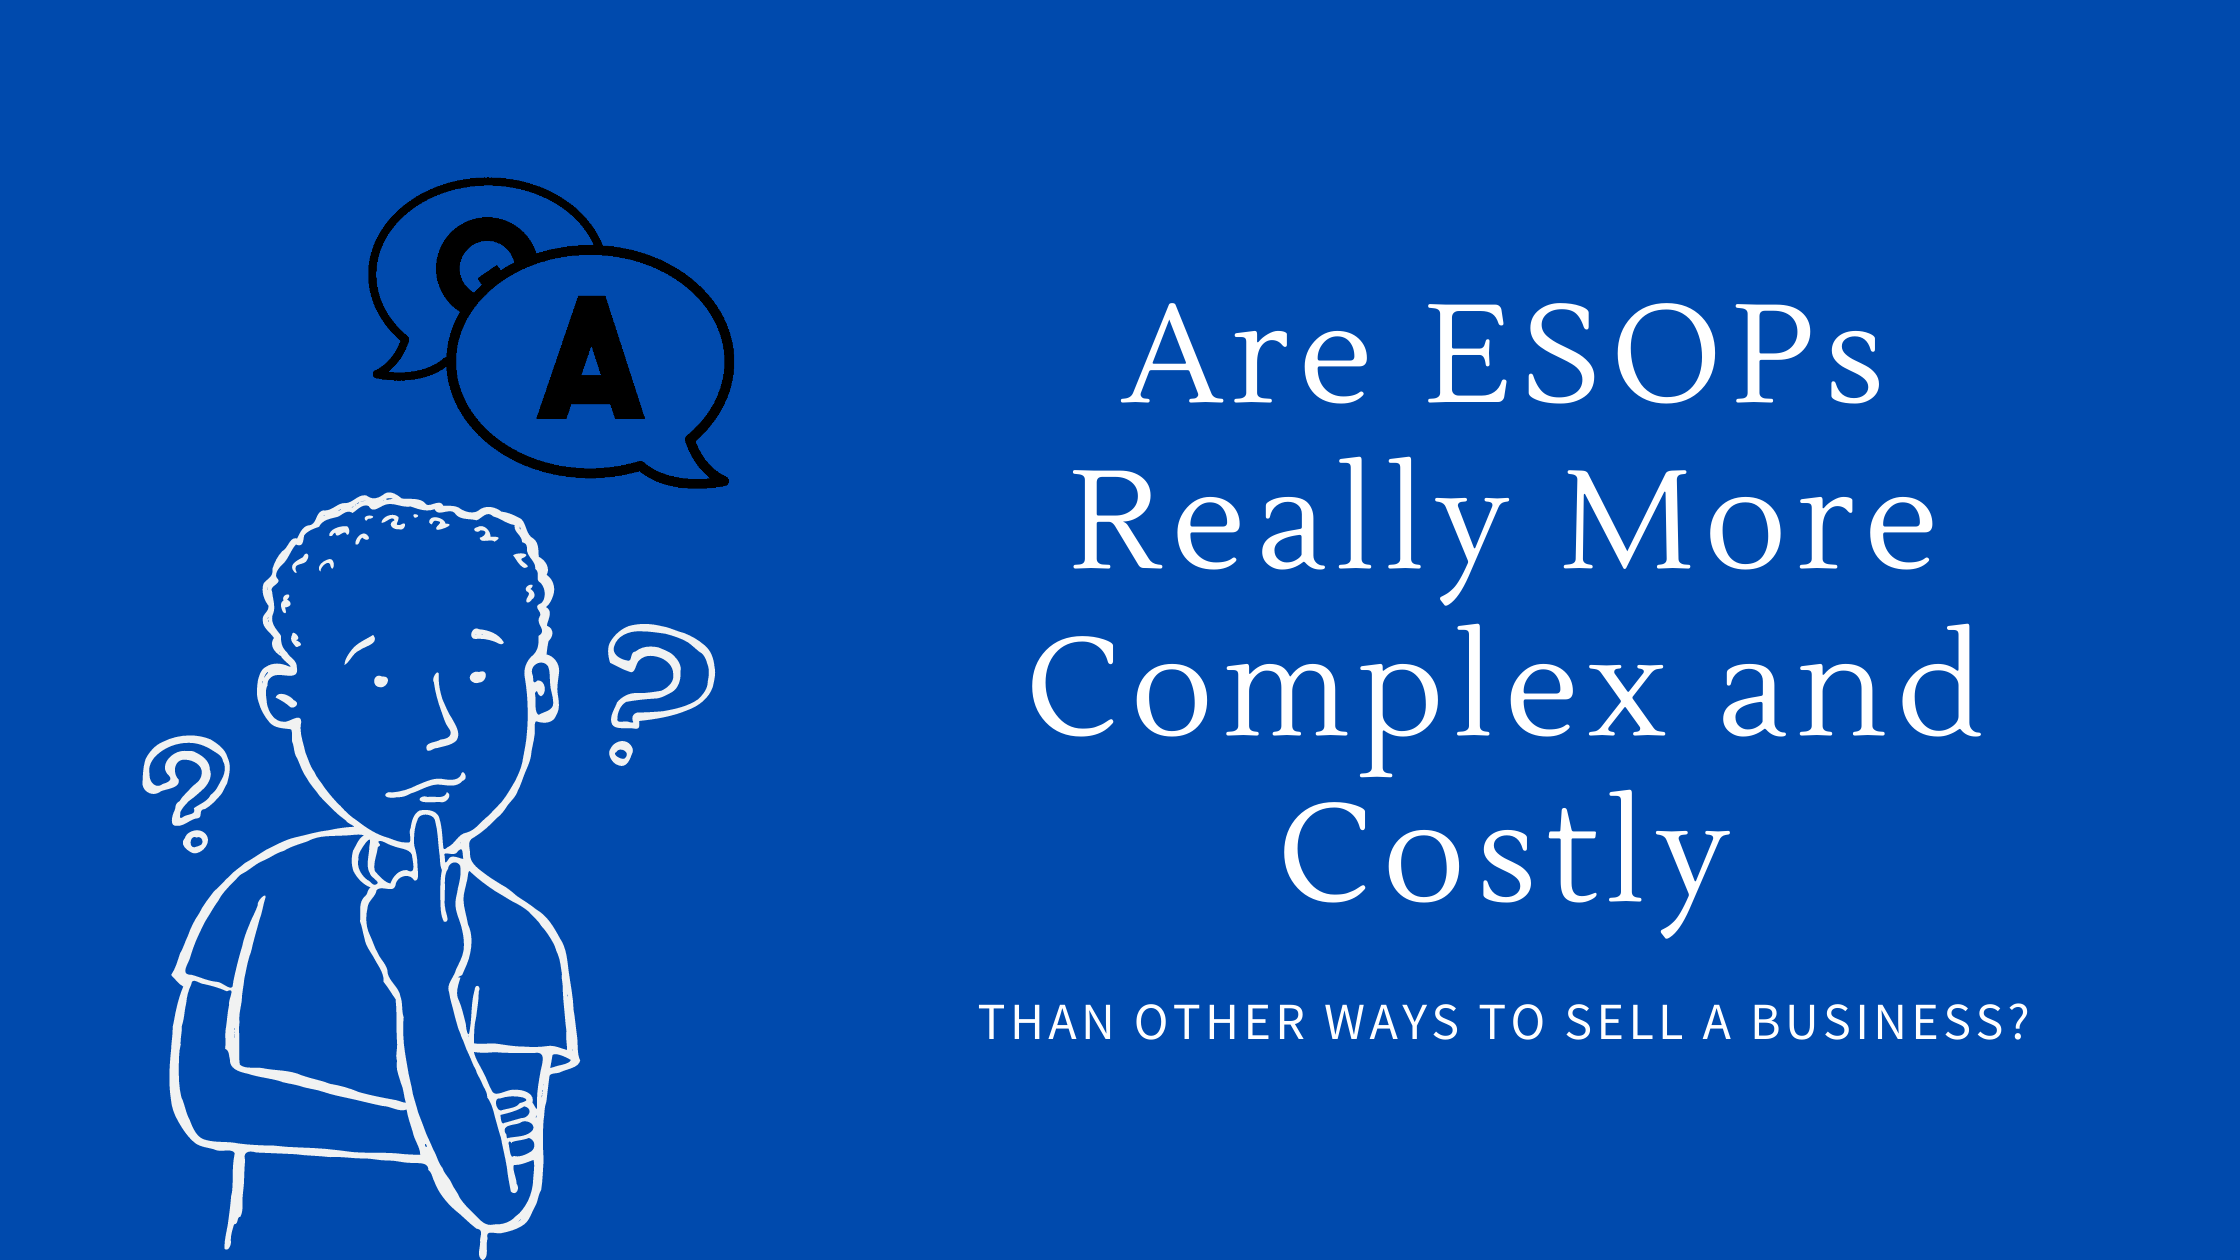 Are ESOPs Really More Complex and Costly Than Other Ways to Sell a Business?